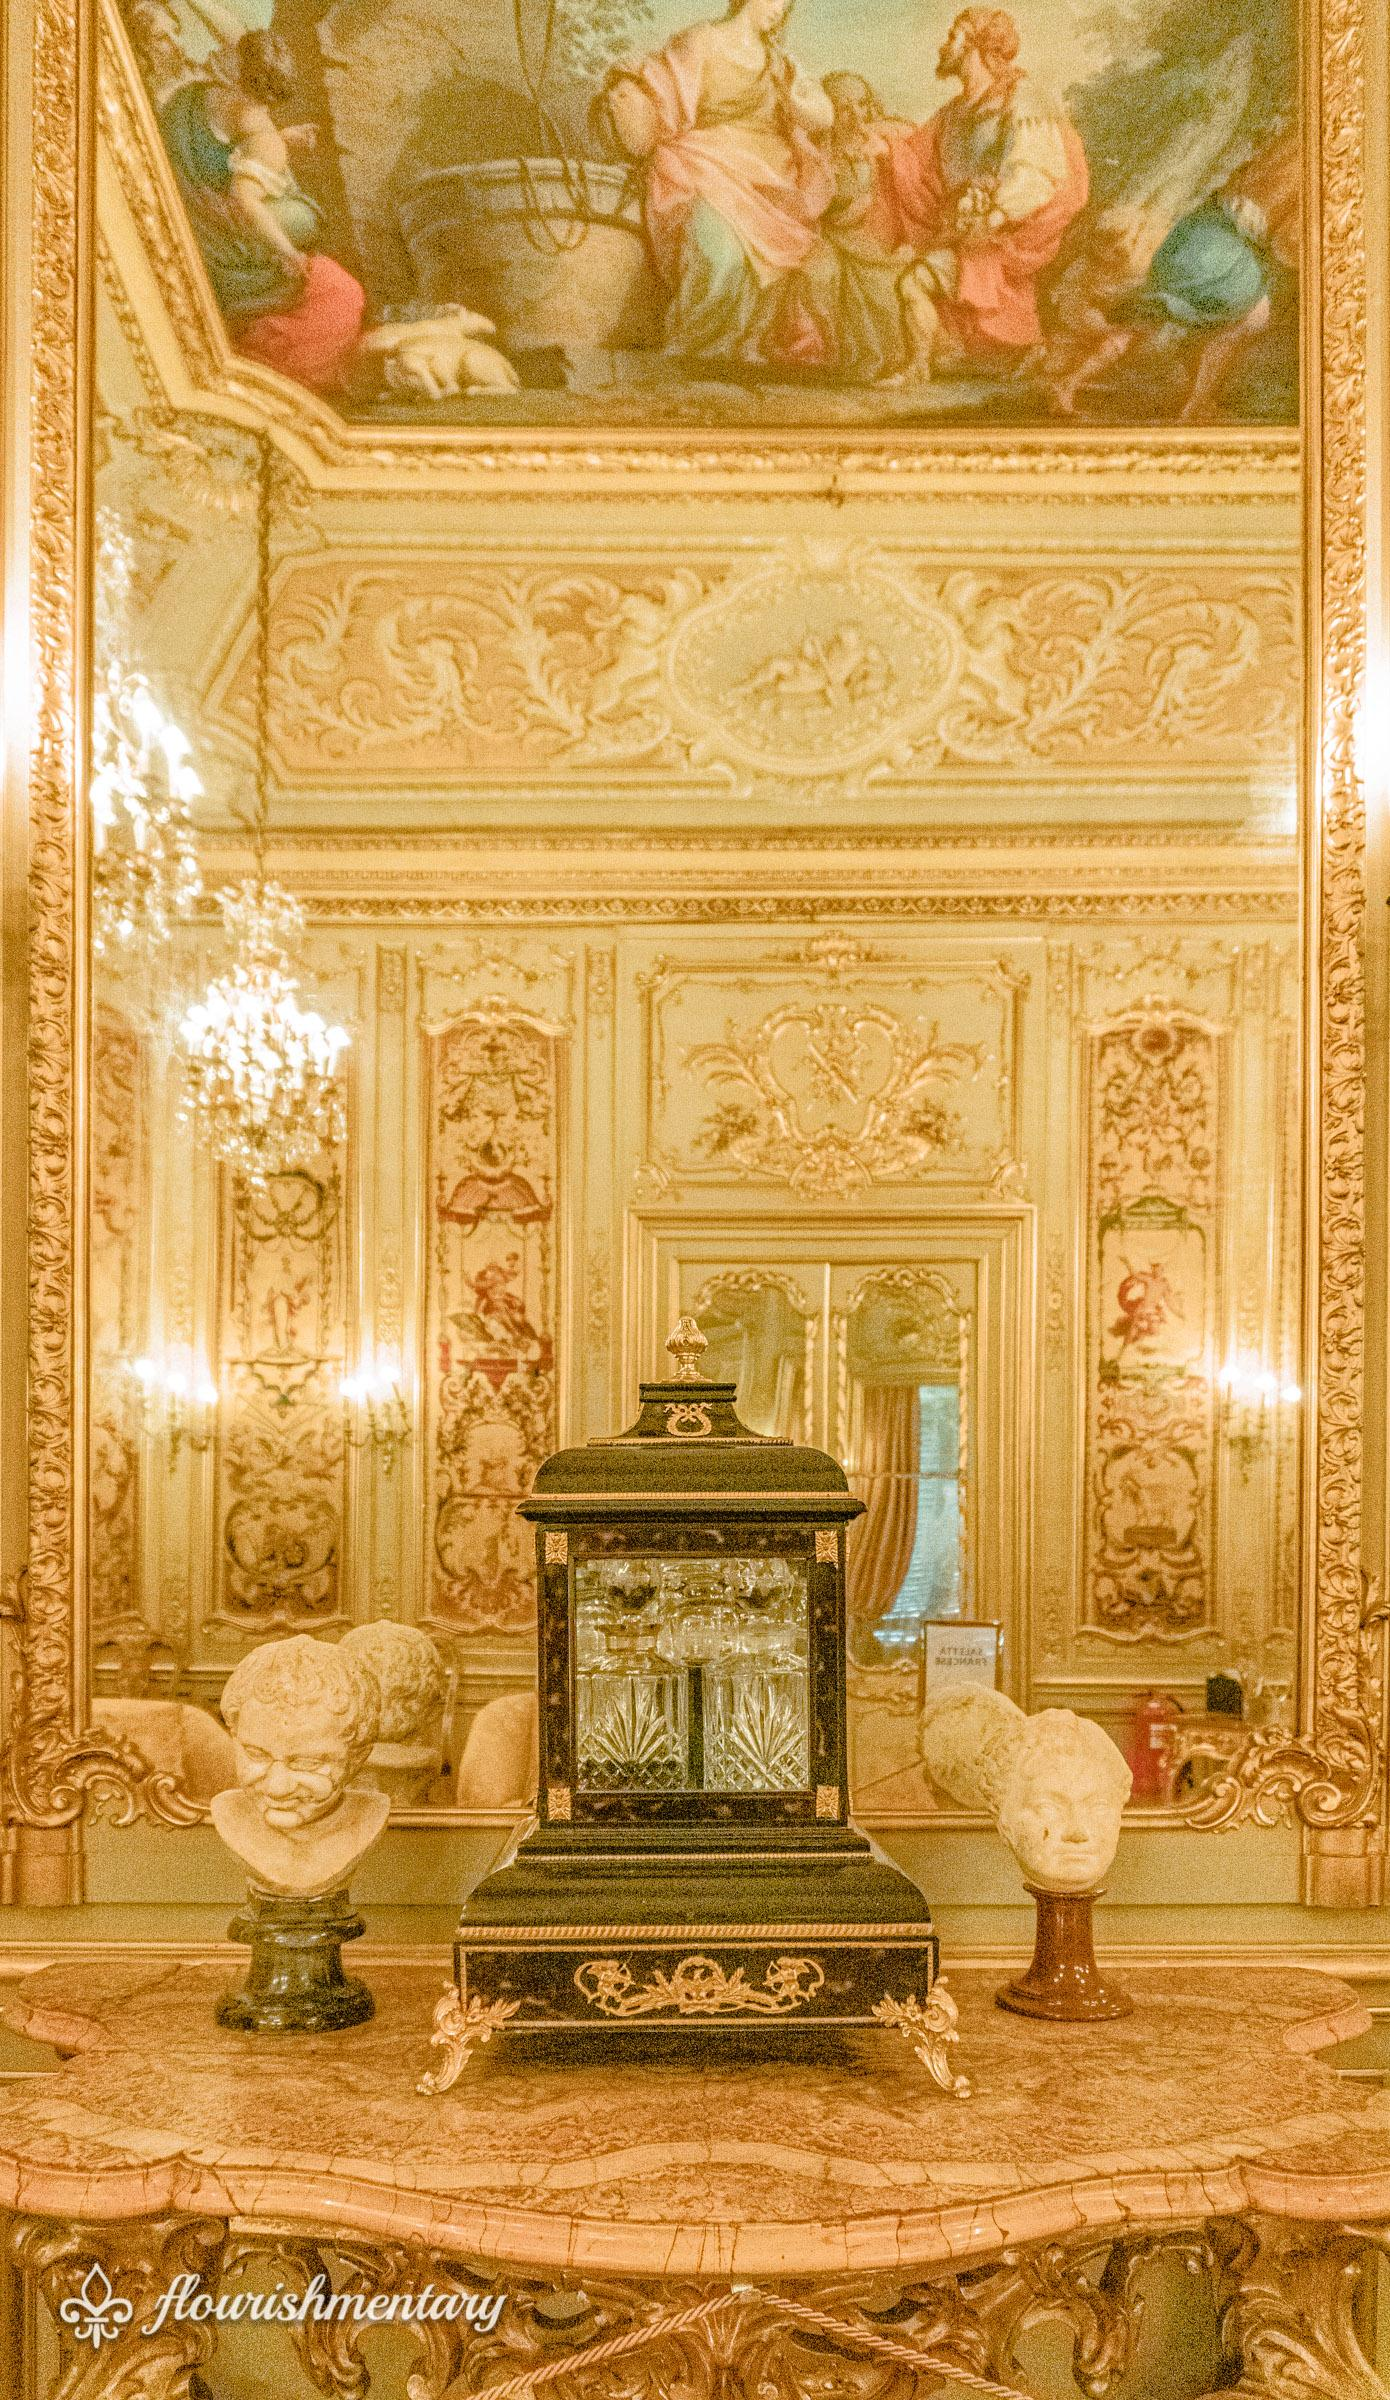 Decorative antiques inside the private apartments